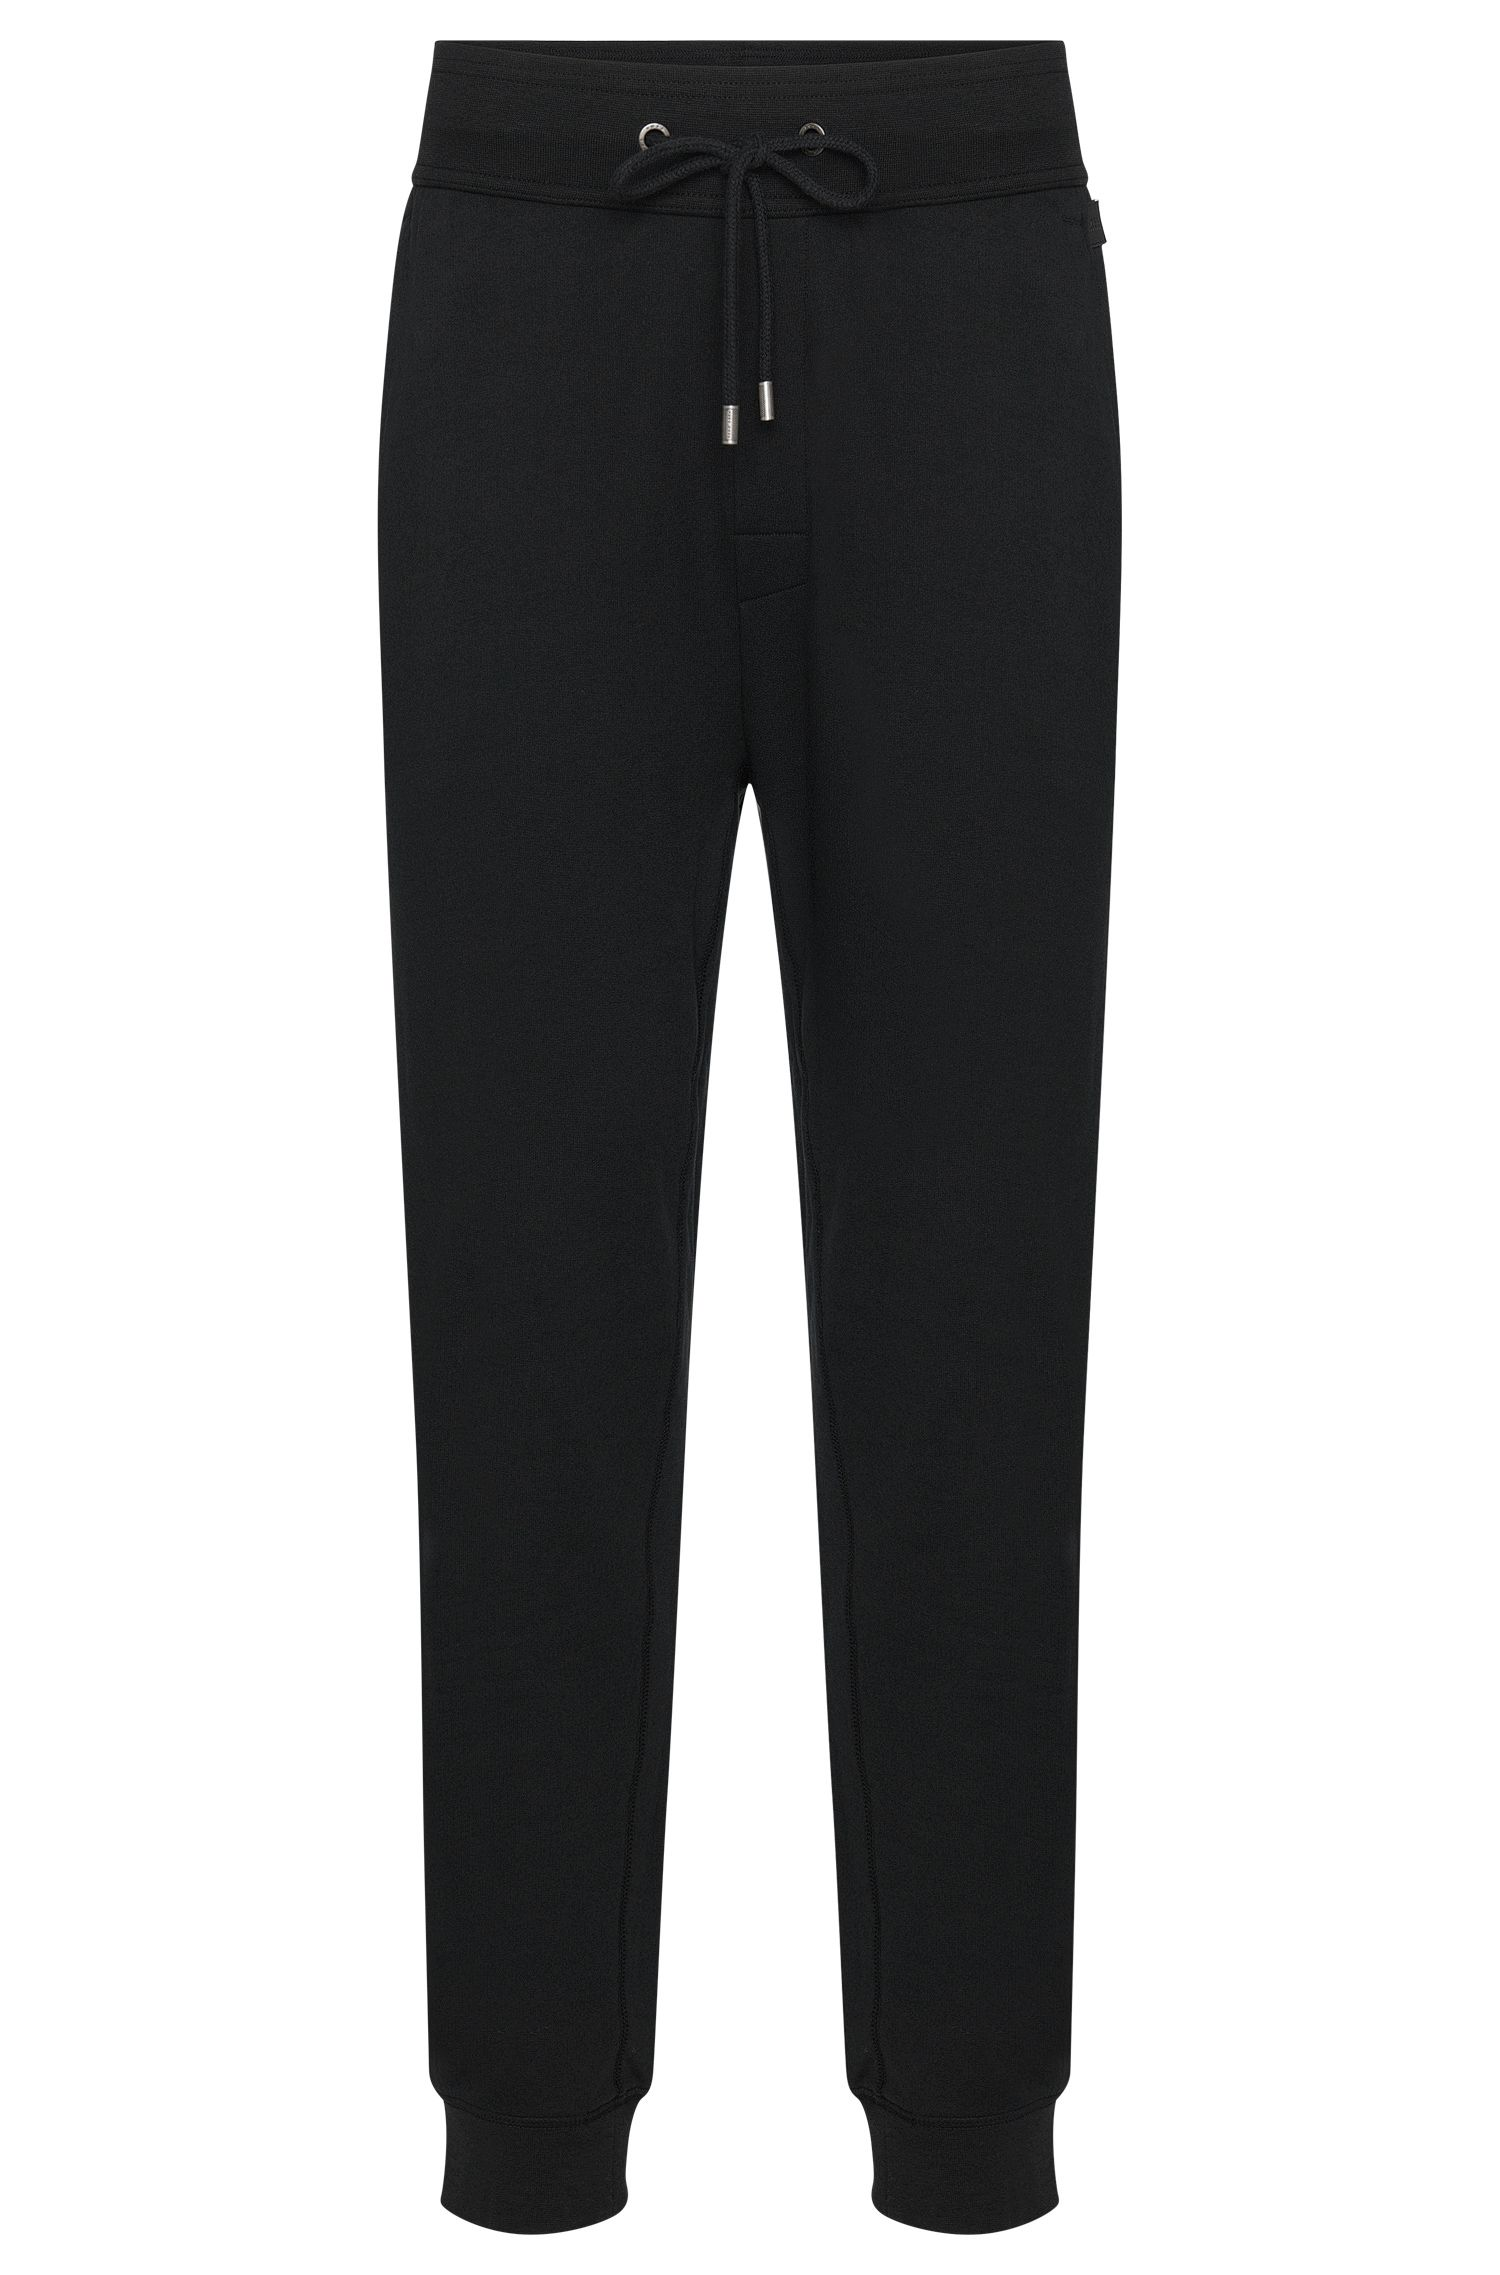 'Long Pant Cuffs' | Cotton Drawstring Sweatpants